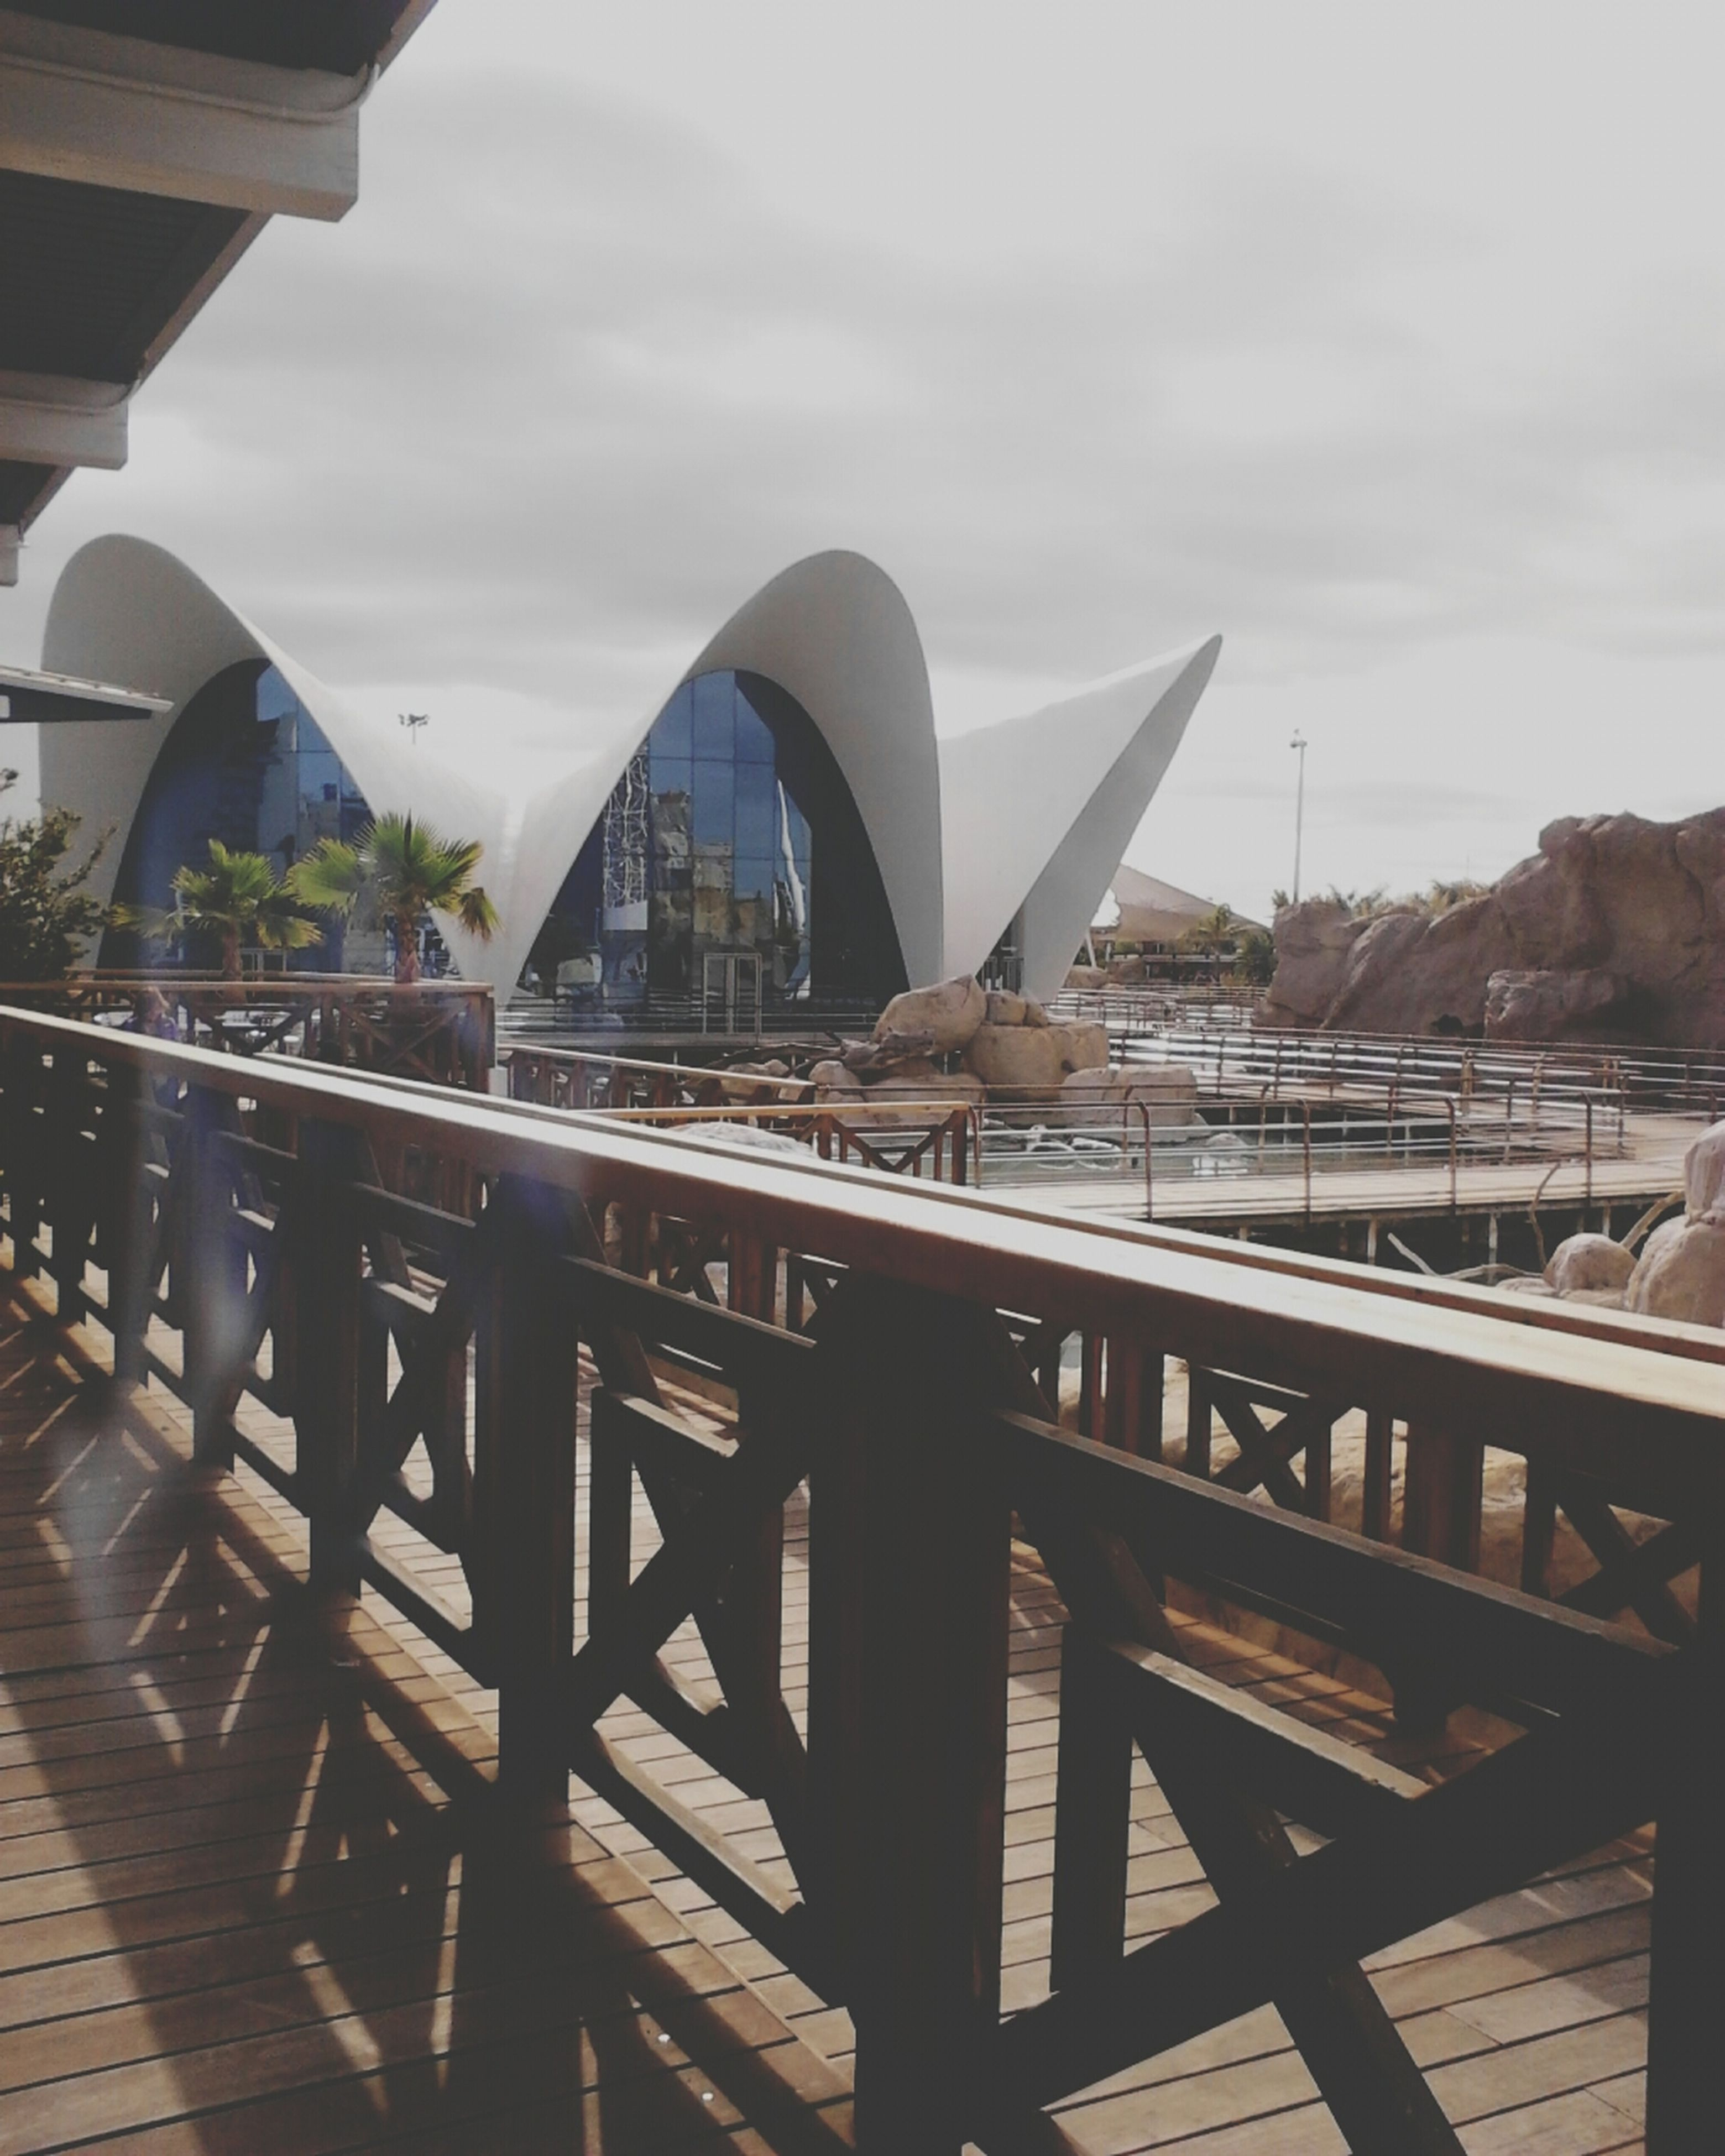 architecture, built structure, sky, building exterior, railing, water, cloud - sky, day, wood - material, river, pier, cloud, outdoors, city, no people, bridge - man made structure, lake, transportation, nature, reflection